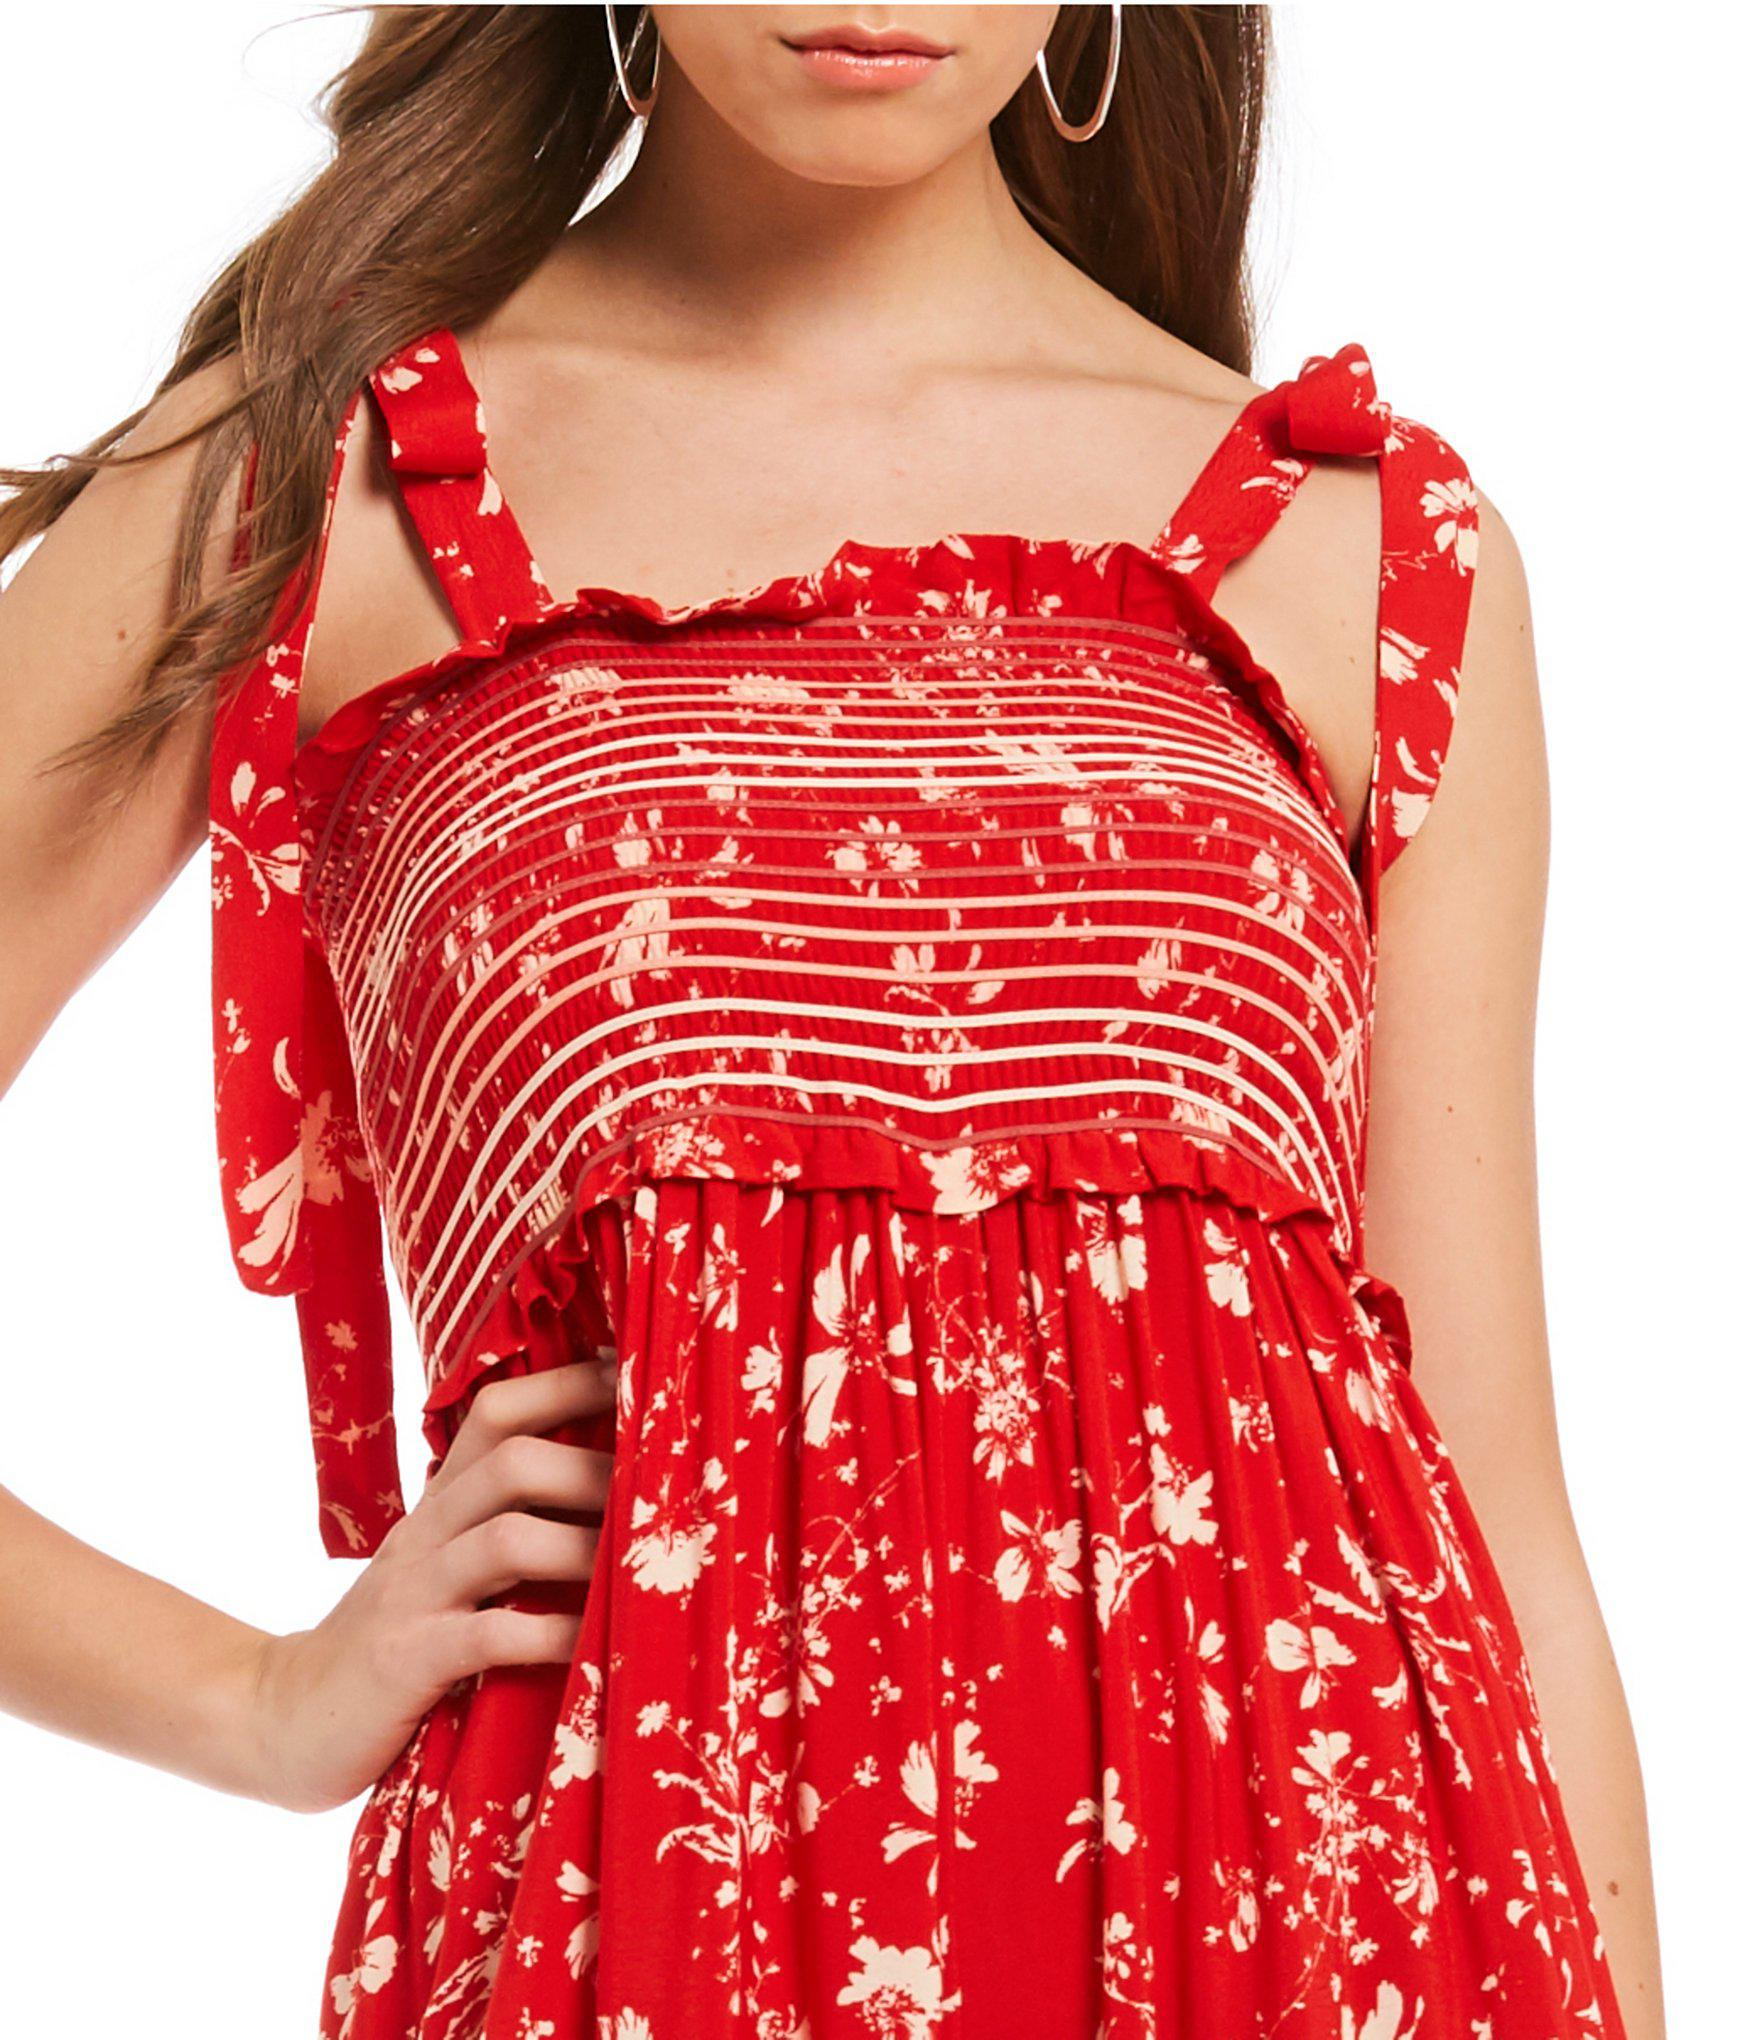 d7ce5556ceaa Lyst - Free People Color My World Smocked Ditsy Floral Print Prairie ...